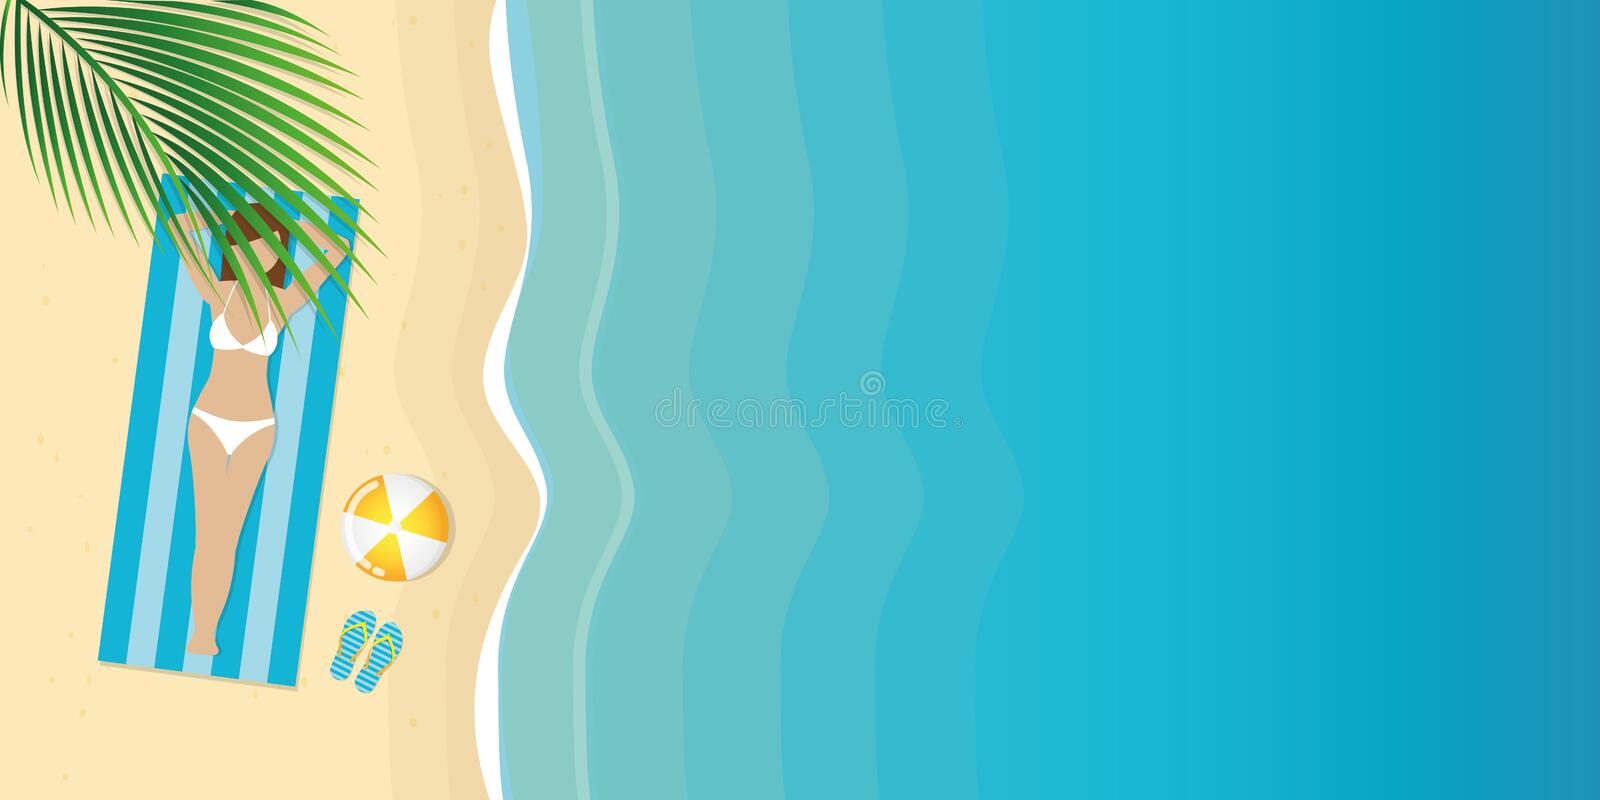 Girl in bikini is lying on the beach under a palm tree stock illustration